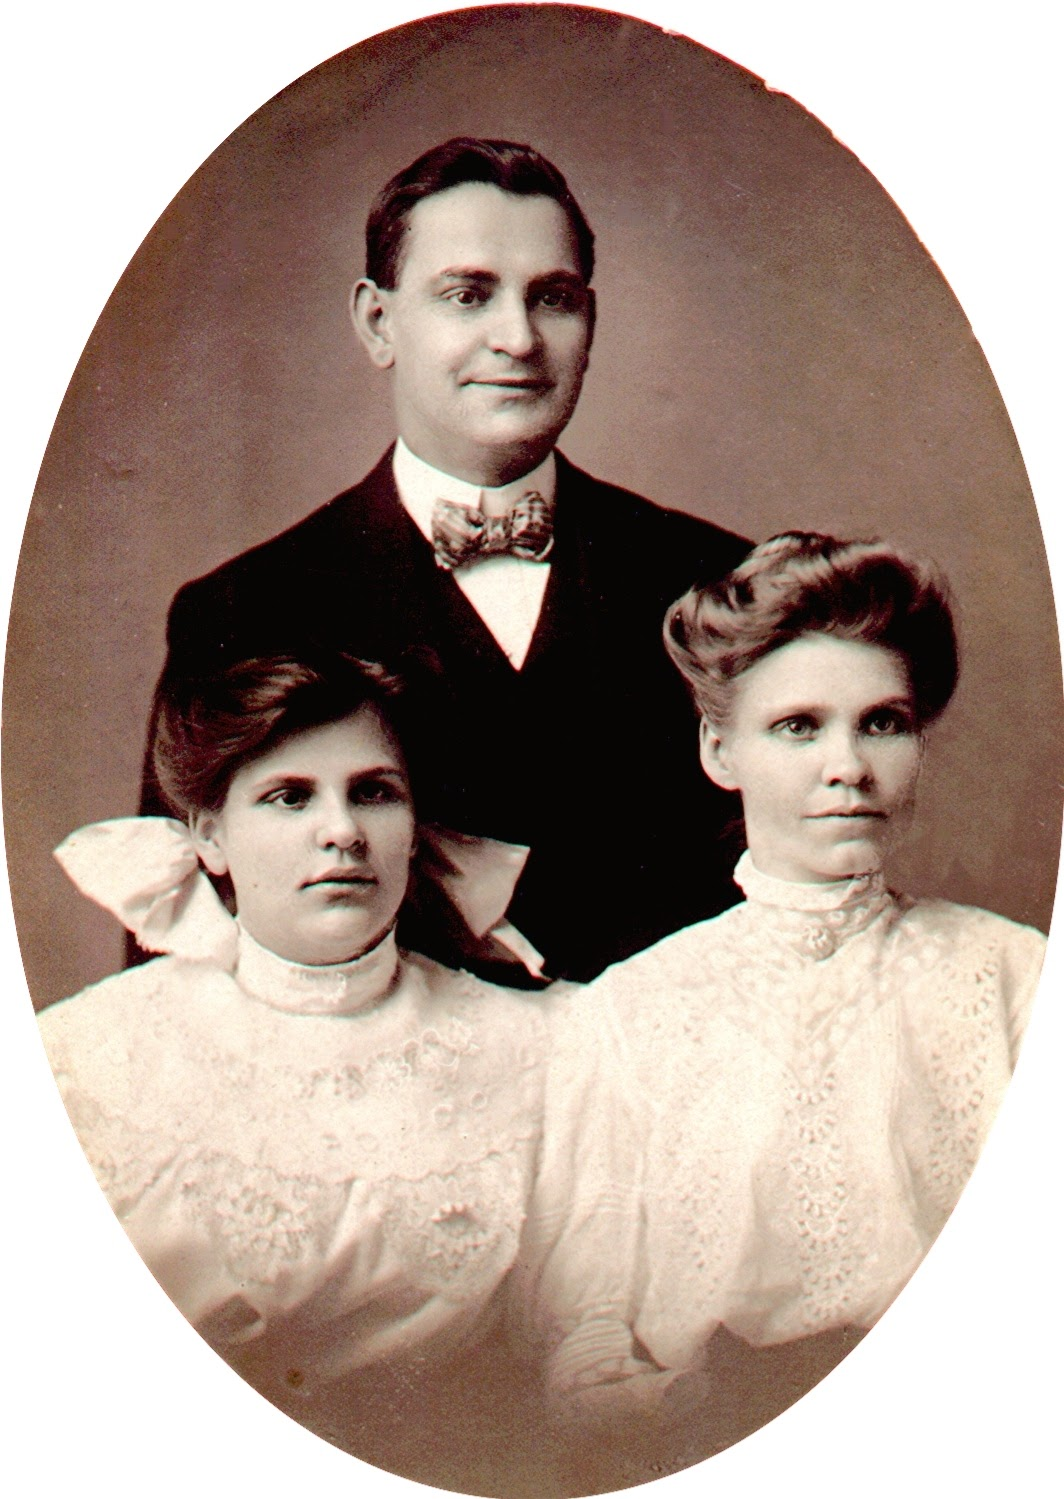 Frank E., Ethel and Fannie (Smith) Clark